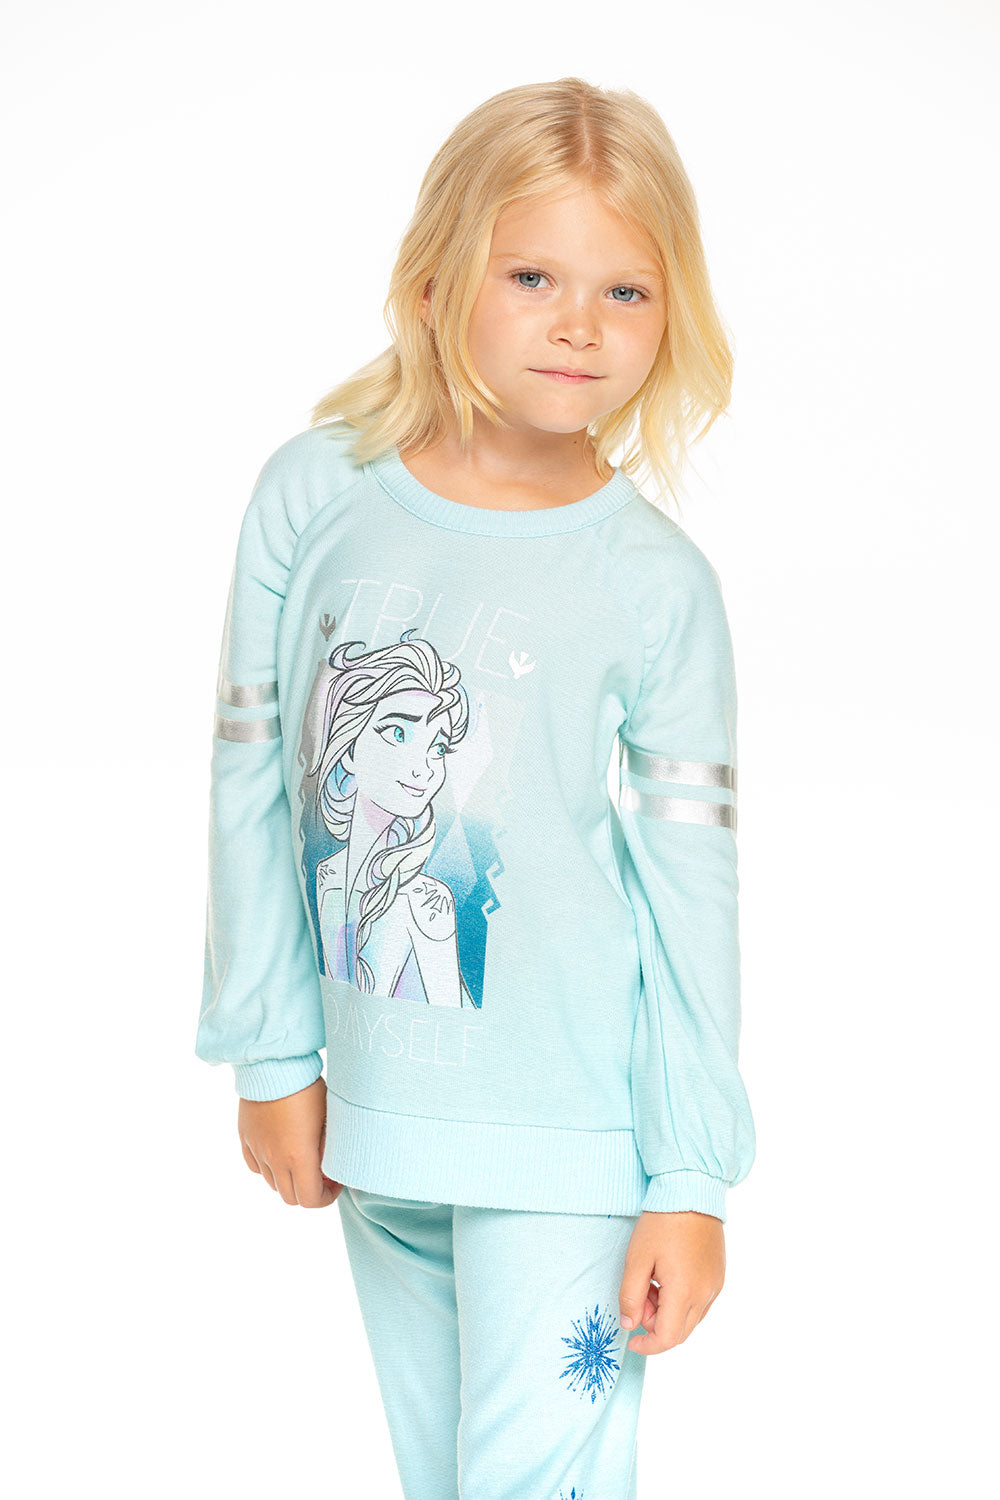 Disney's Frozen 2 - True To Myself GIRLS chaserbrand4.myshopify.com